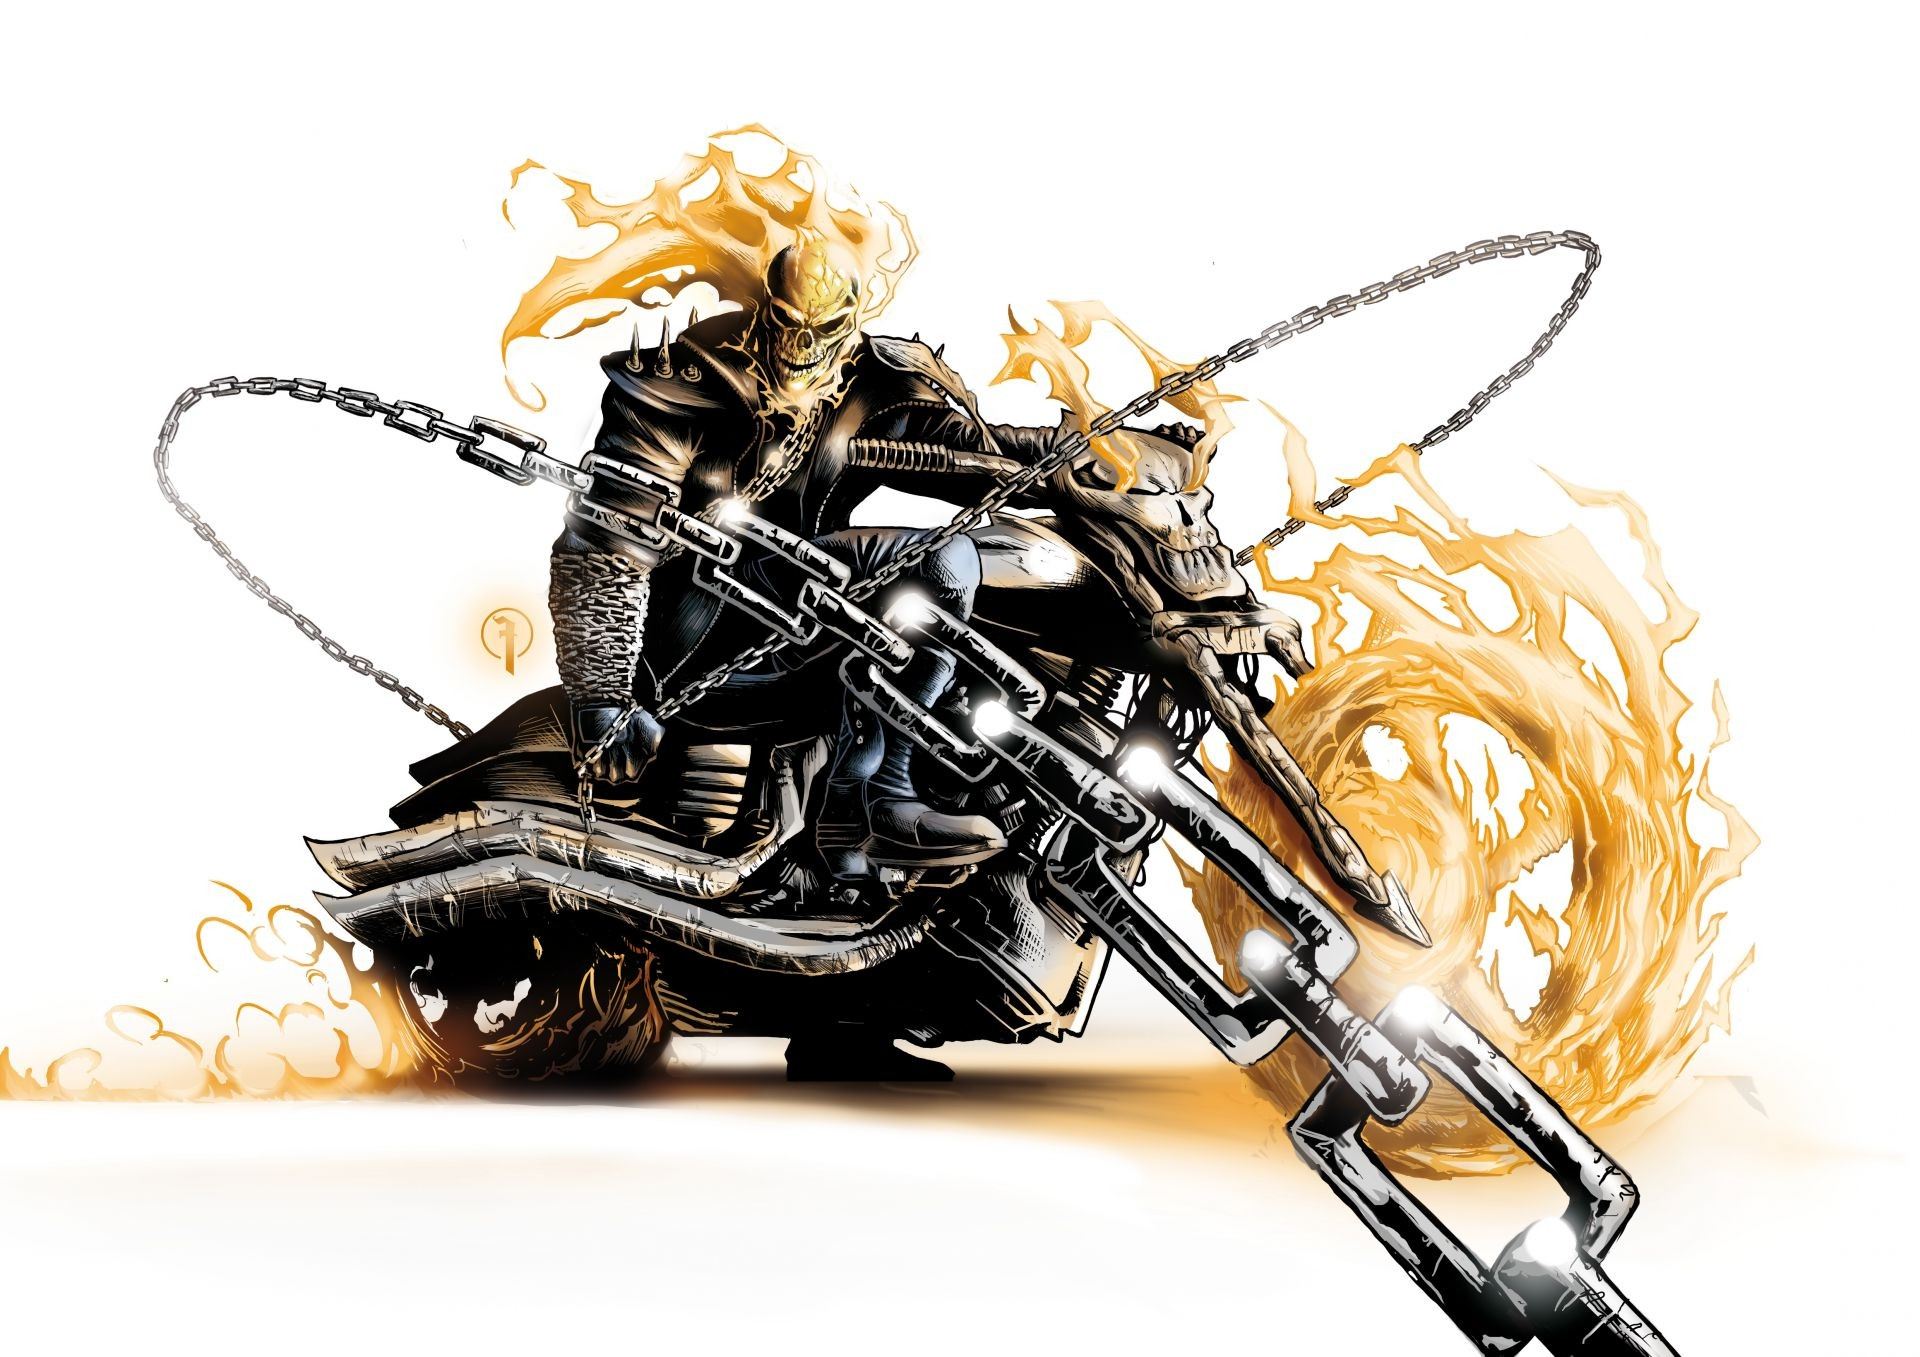 the spirit of vengeance Ghost rider ghost rider Ghost